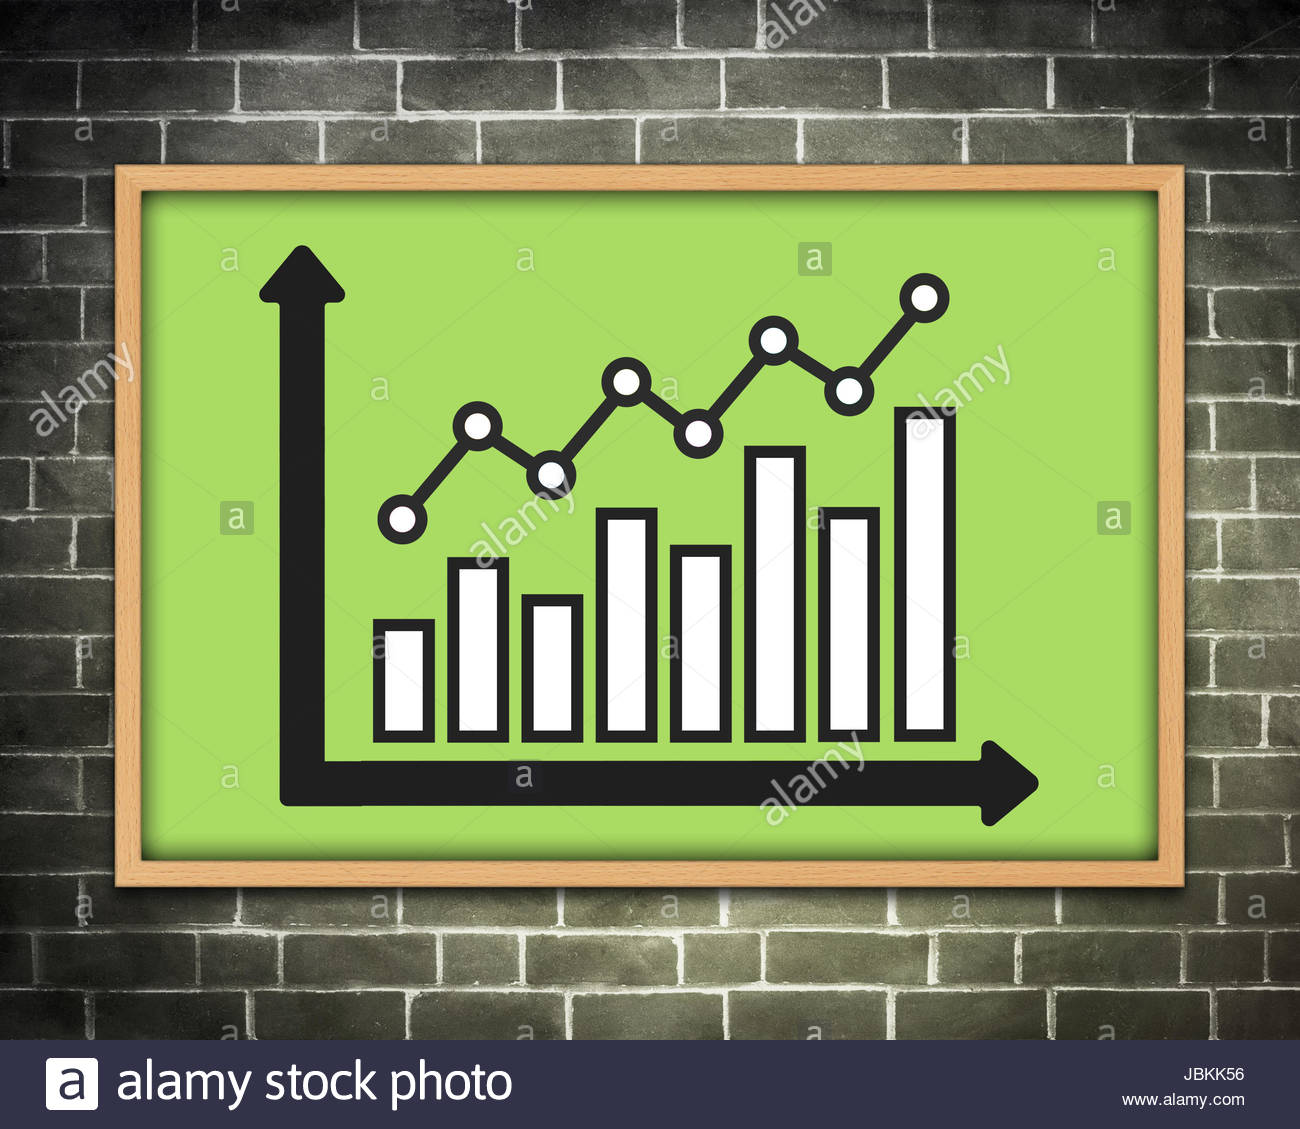 Statistic chalkboard graph - Stock Image